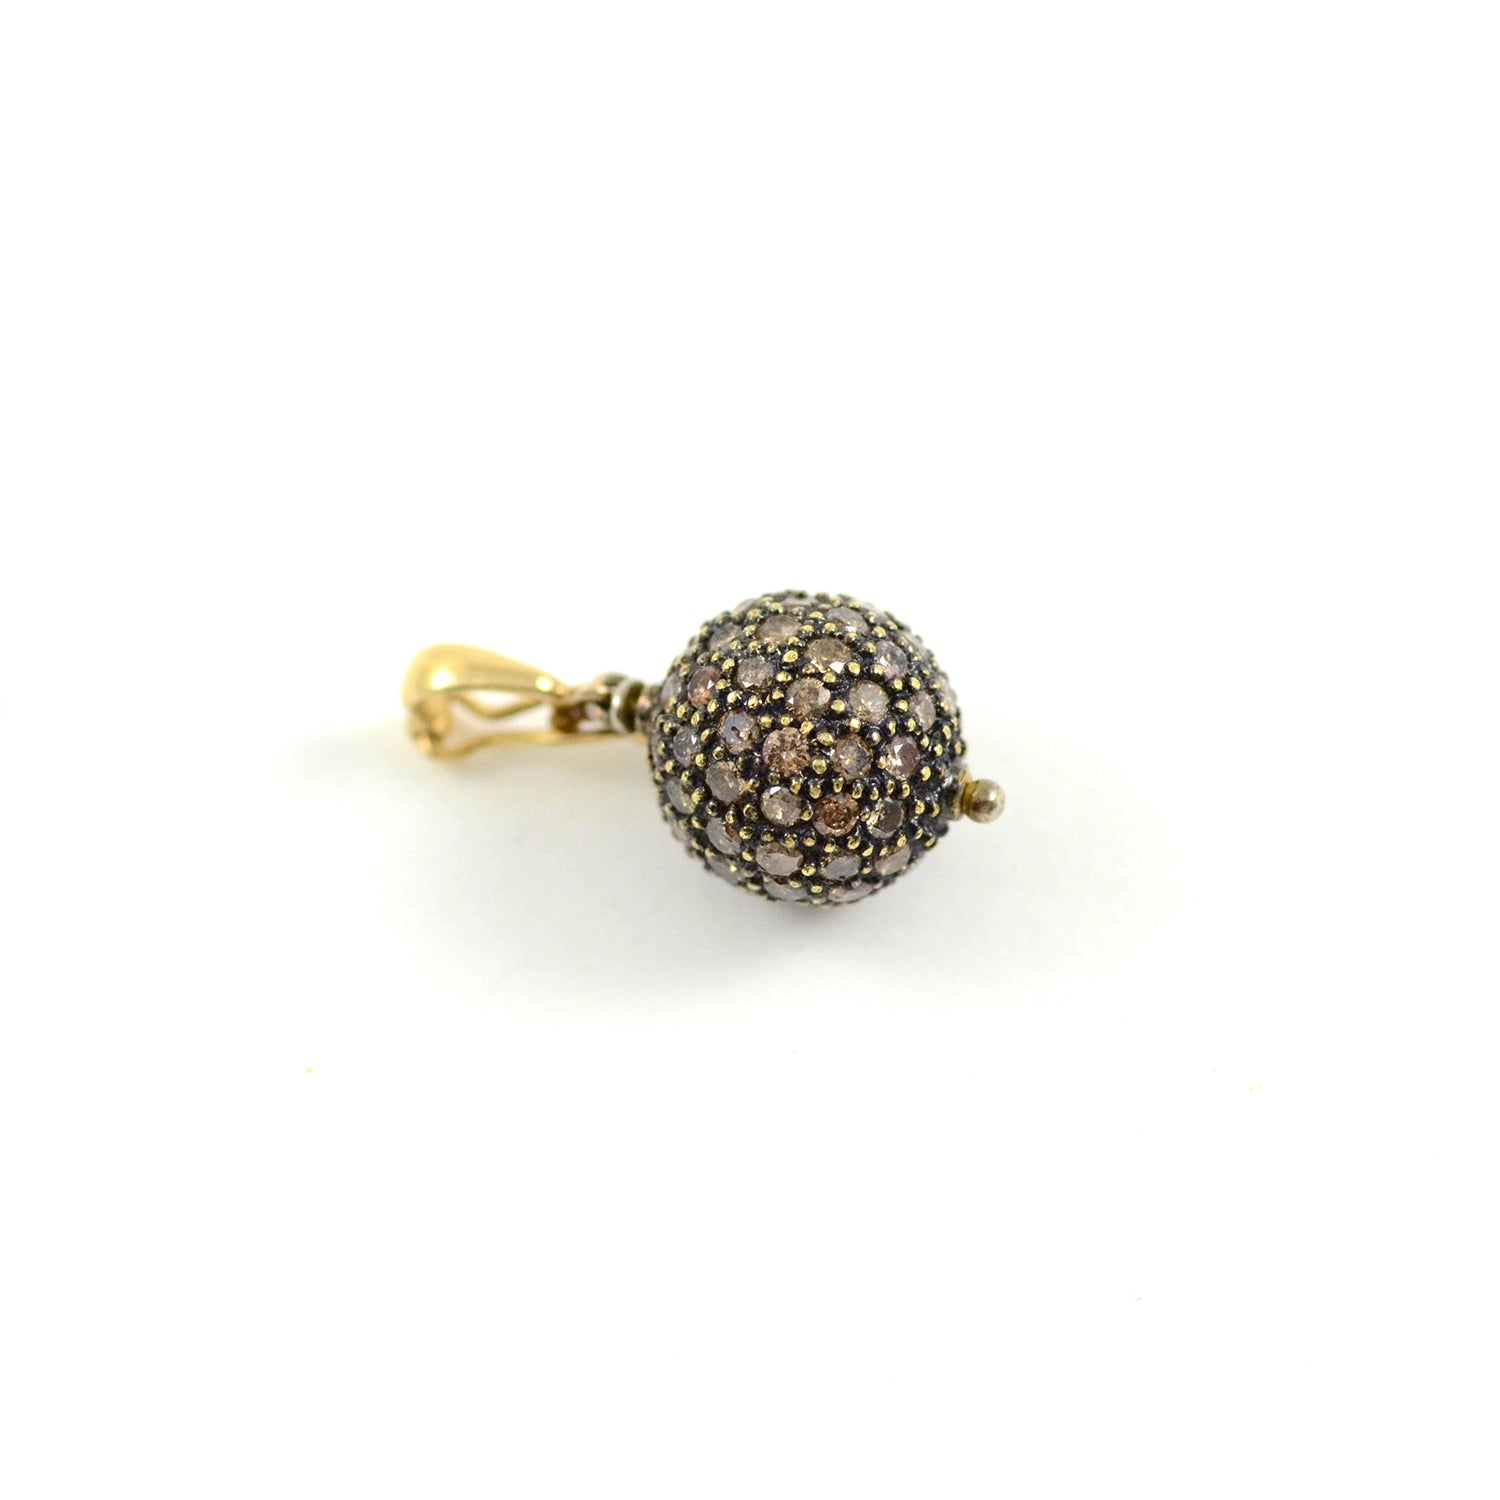 Blackened Gold Orb Pendant with Champagne Diamonds